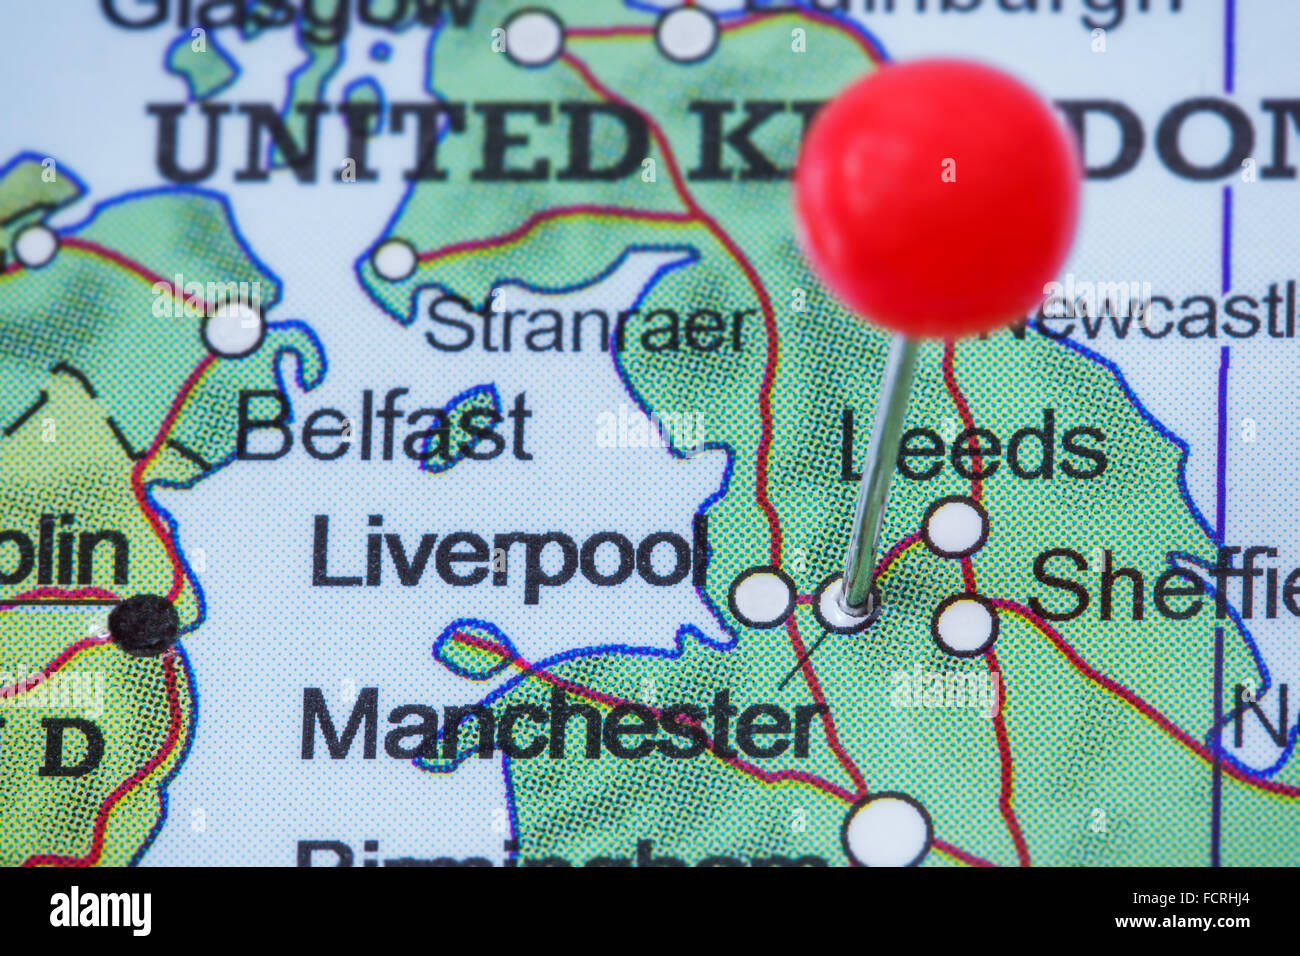 Manchester Map Stock Photos & Manchester Map Stock Images - Alamy